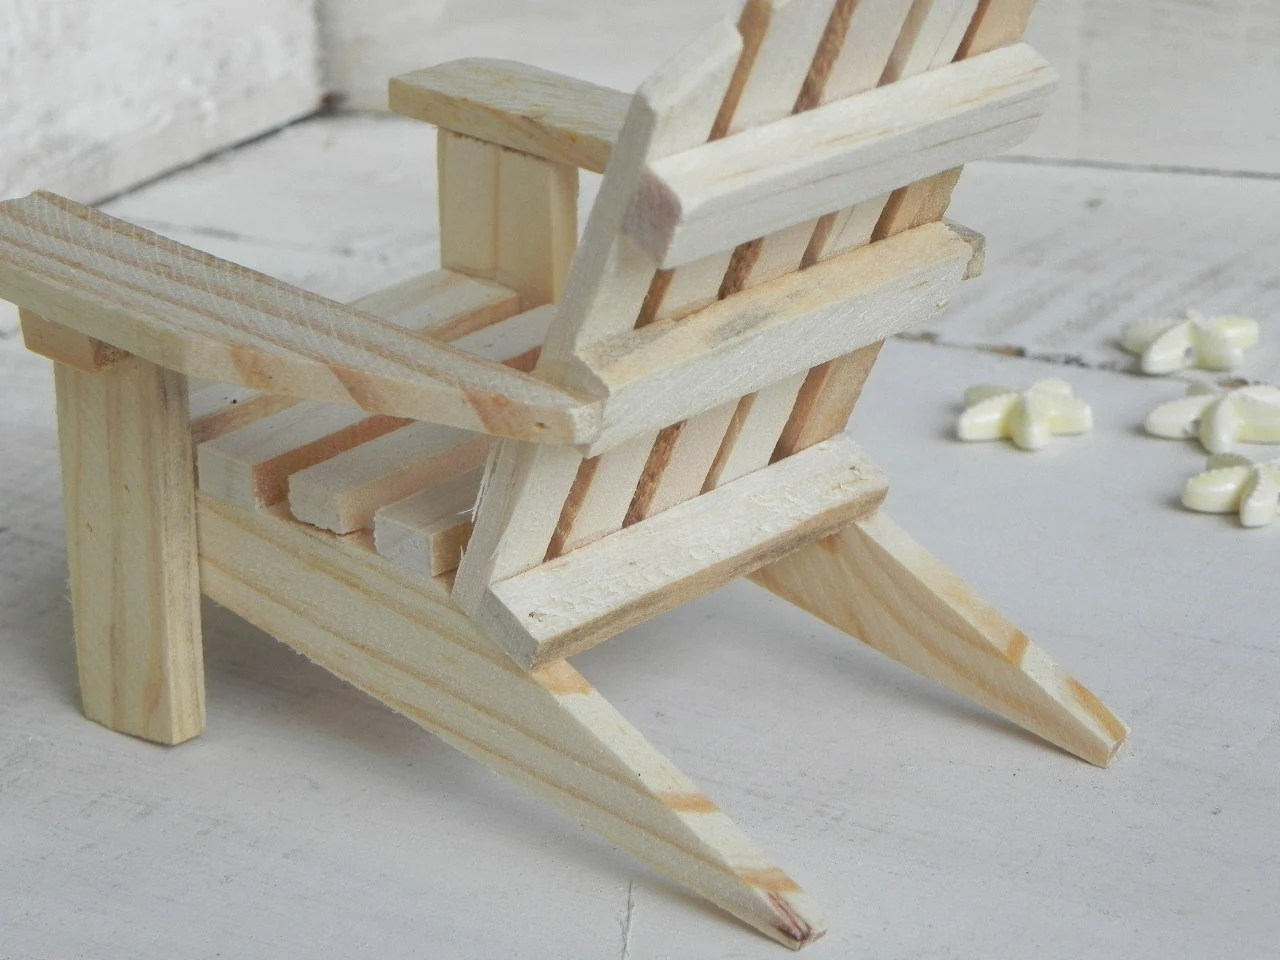 Mini Adirondack Chairs Adirondack Chair Miniature Ready To Paint Wood Supplies For